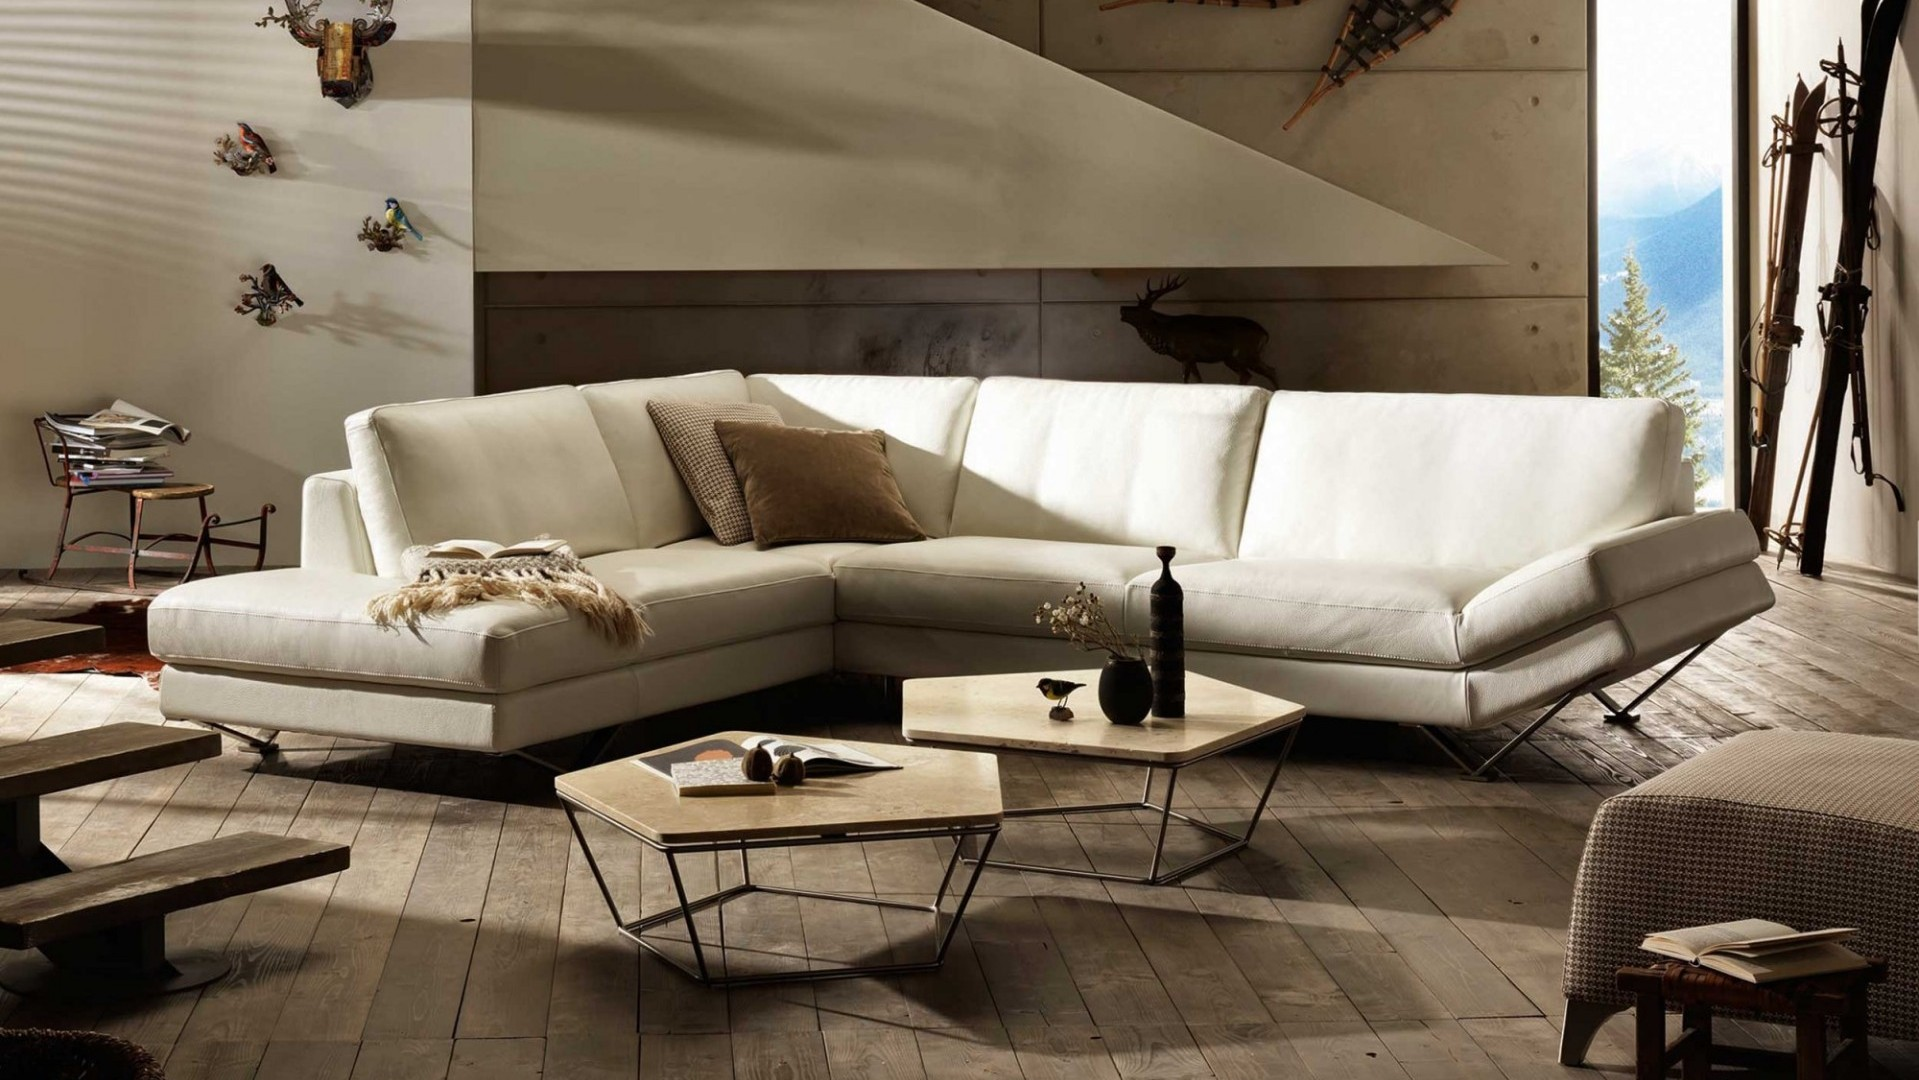 are natuzzi sofas good quality sofa table design ideas how to know if it is high home